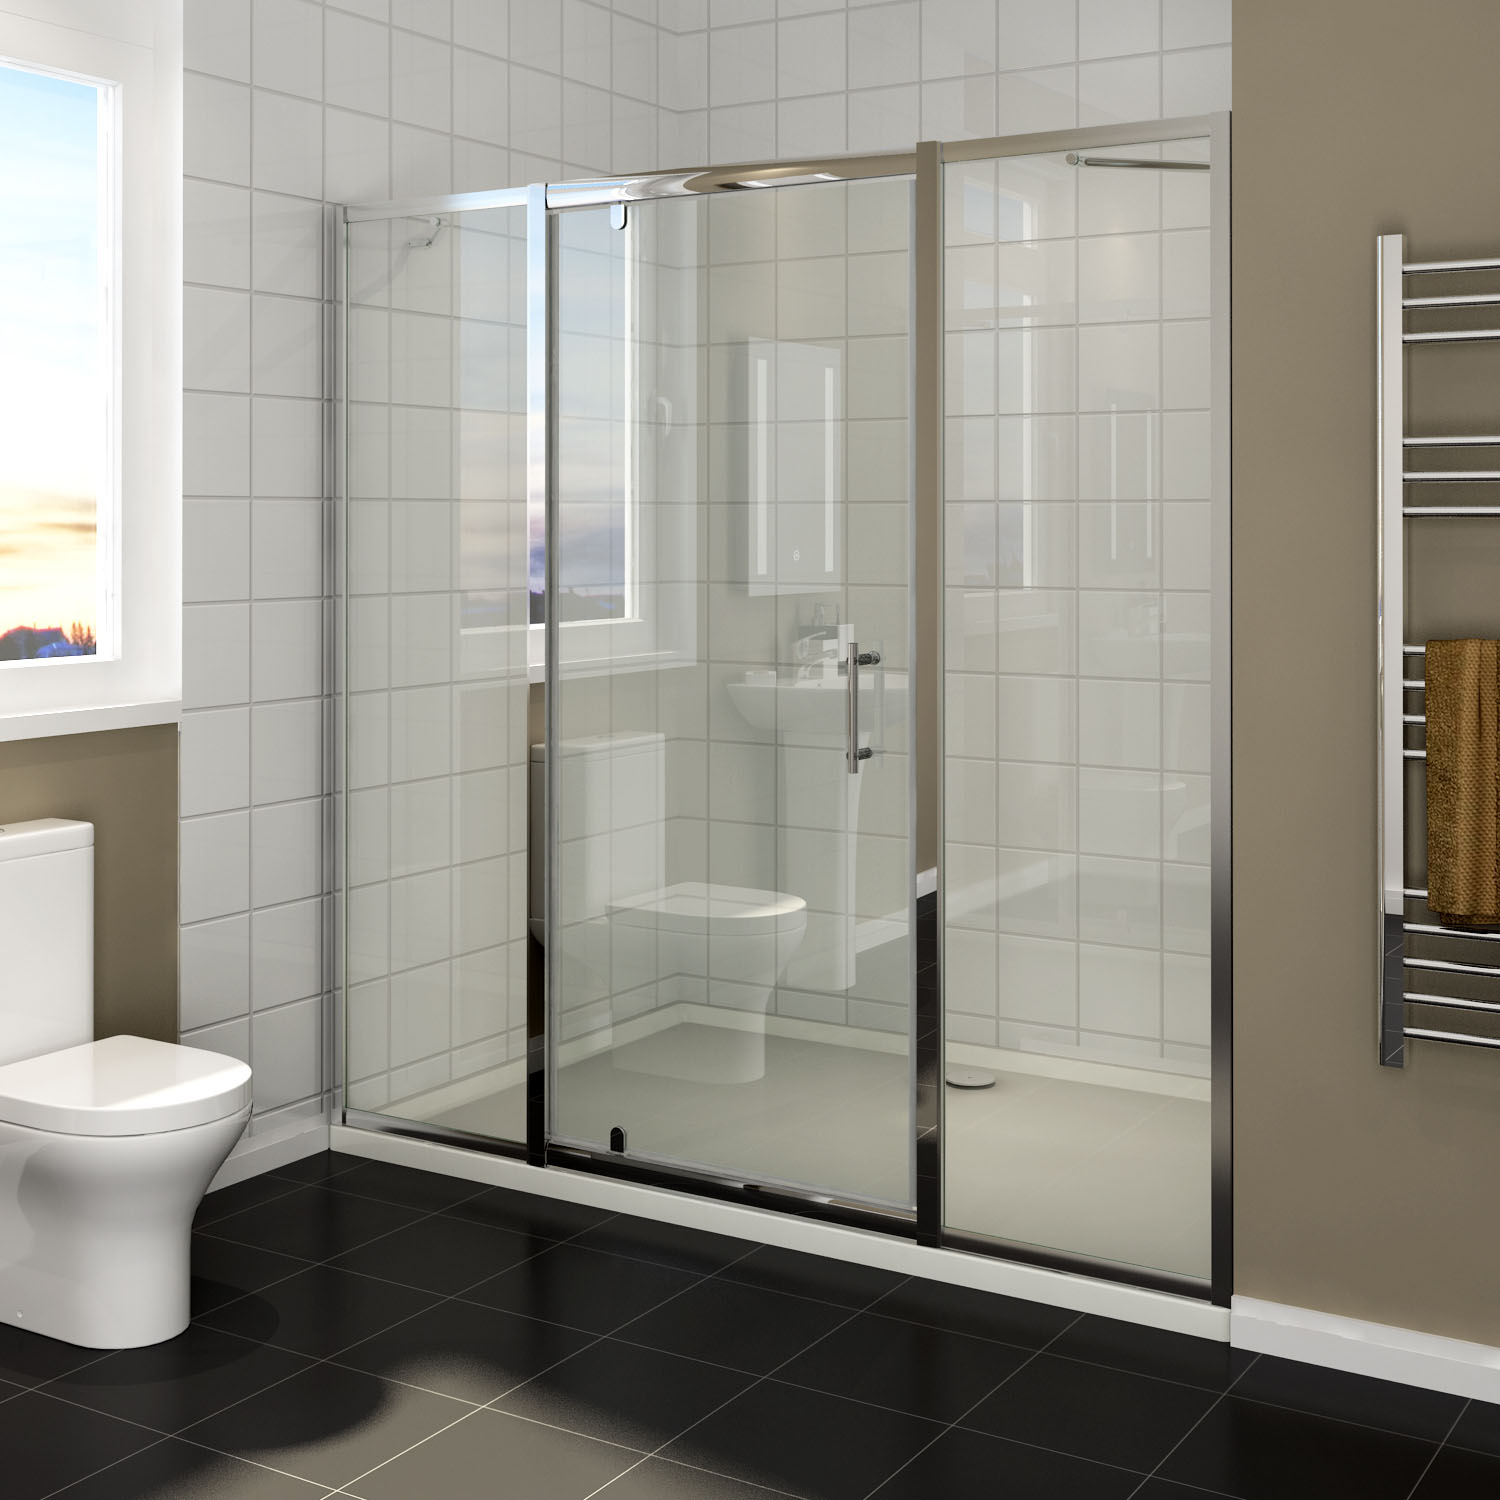 Details About 1060 1600 Pivot Door Shower Screen With Double Extended Glass Panel Wall To Wall